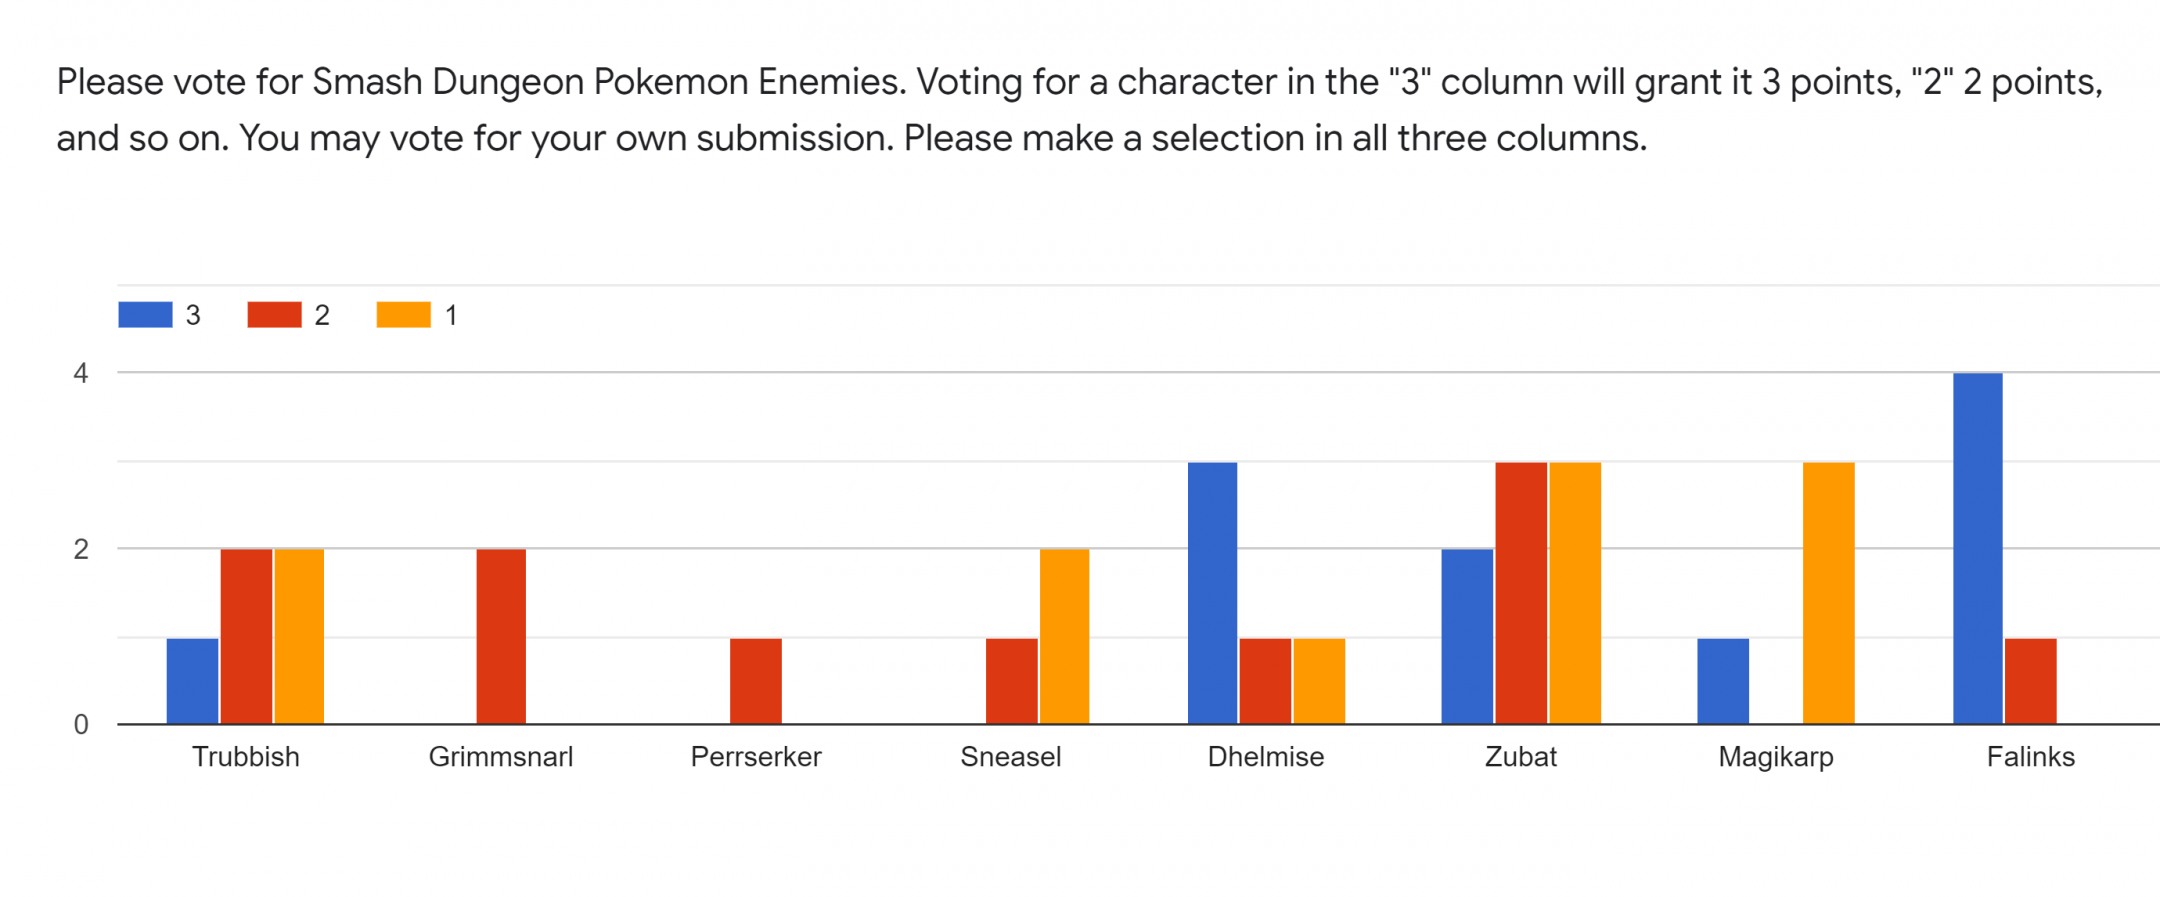 Forms response chart. Question title: Please vote for Smash Dungeon Pokemon Enemies. Voting for a character in the 3 column will grant it 3 points, 2 2 points, and so on. You may vote for your own submission. Please make a selection in all three columns.. Number of responses: .